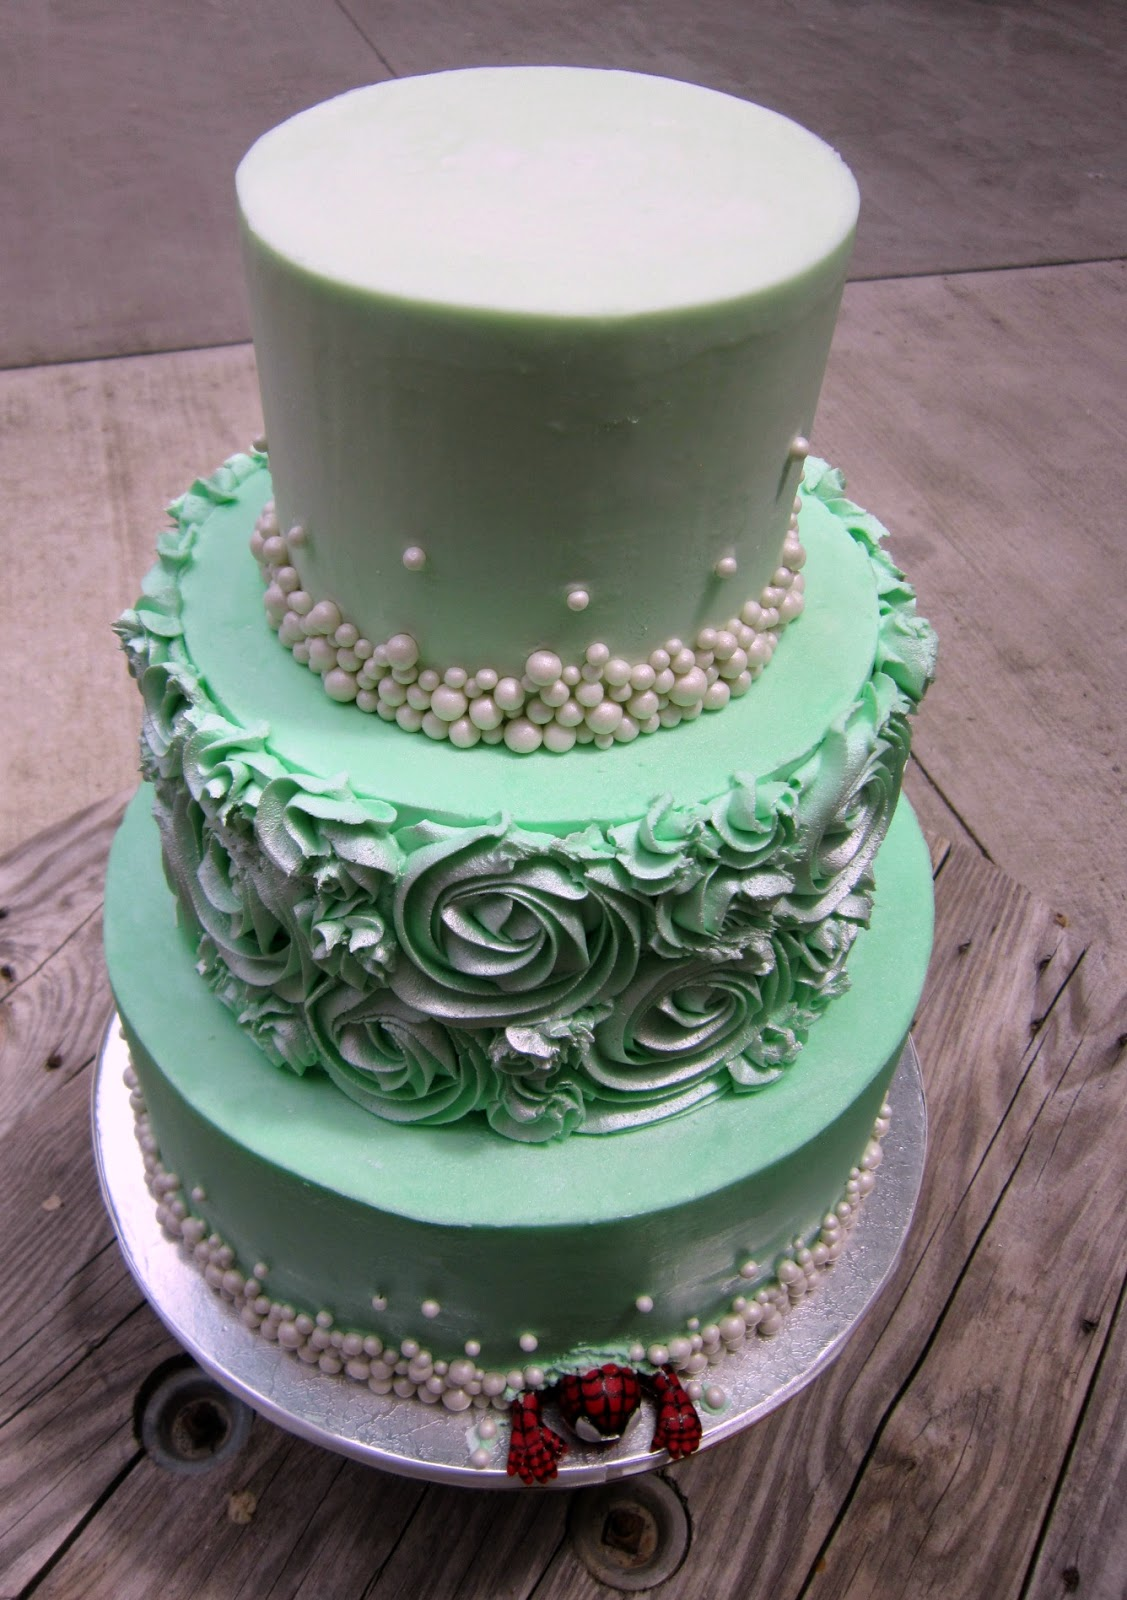 Delectable Cakes Mint Green Rose Swirl Wedding Cake